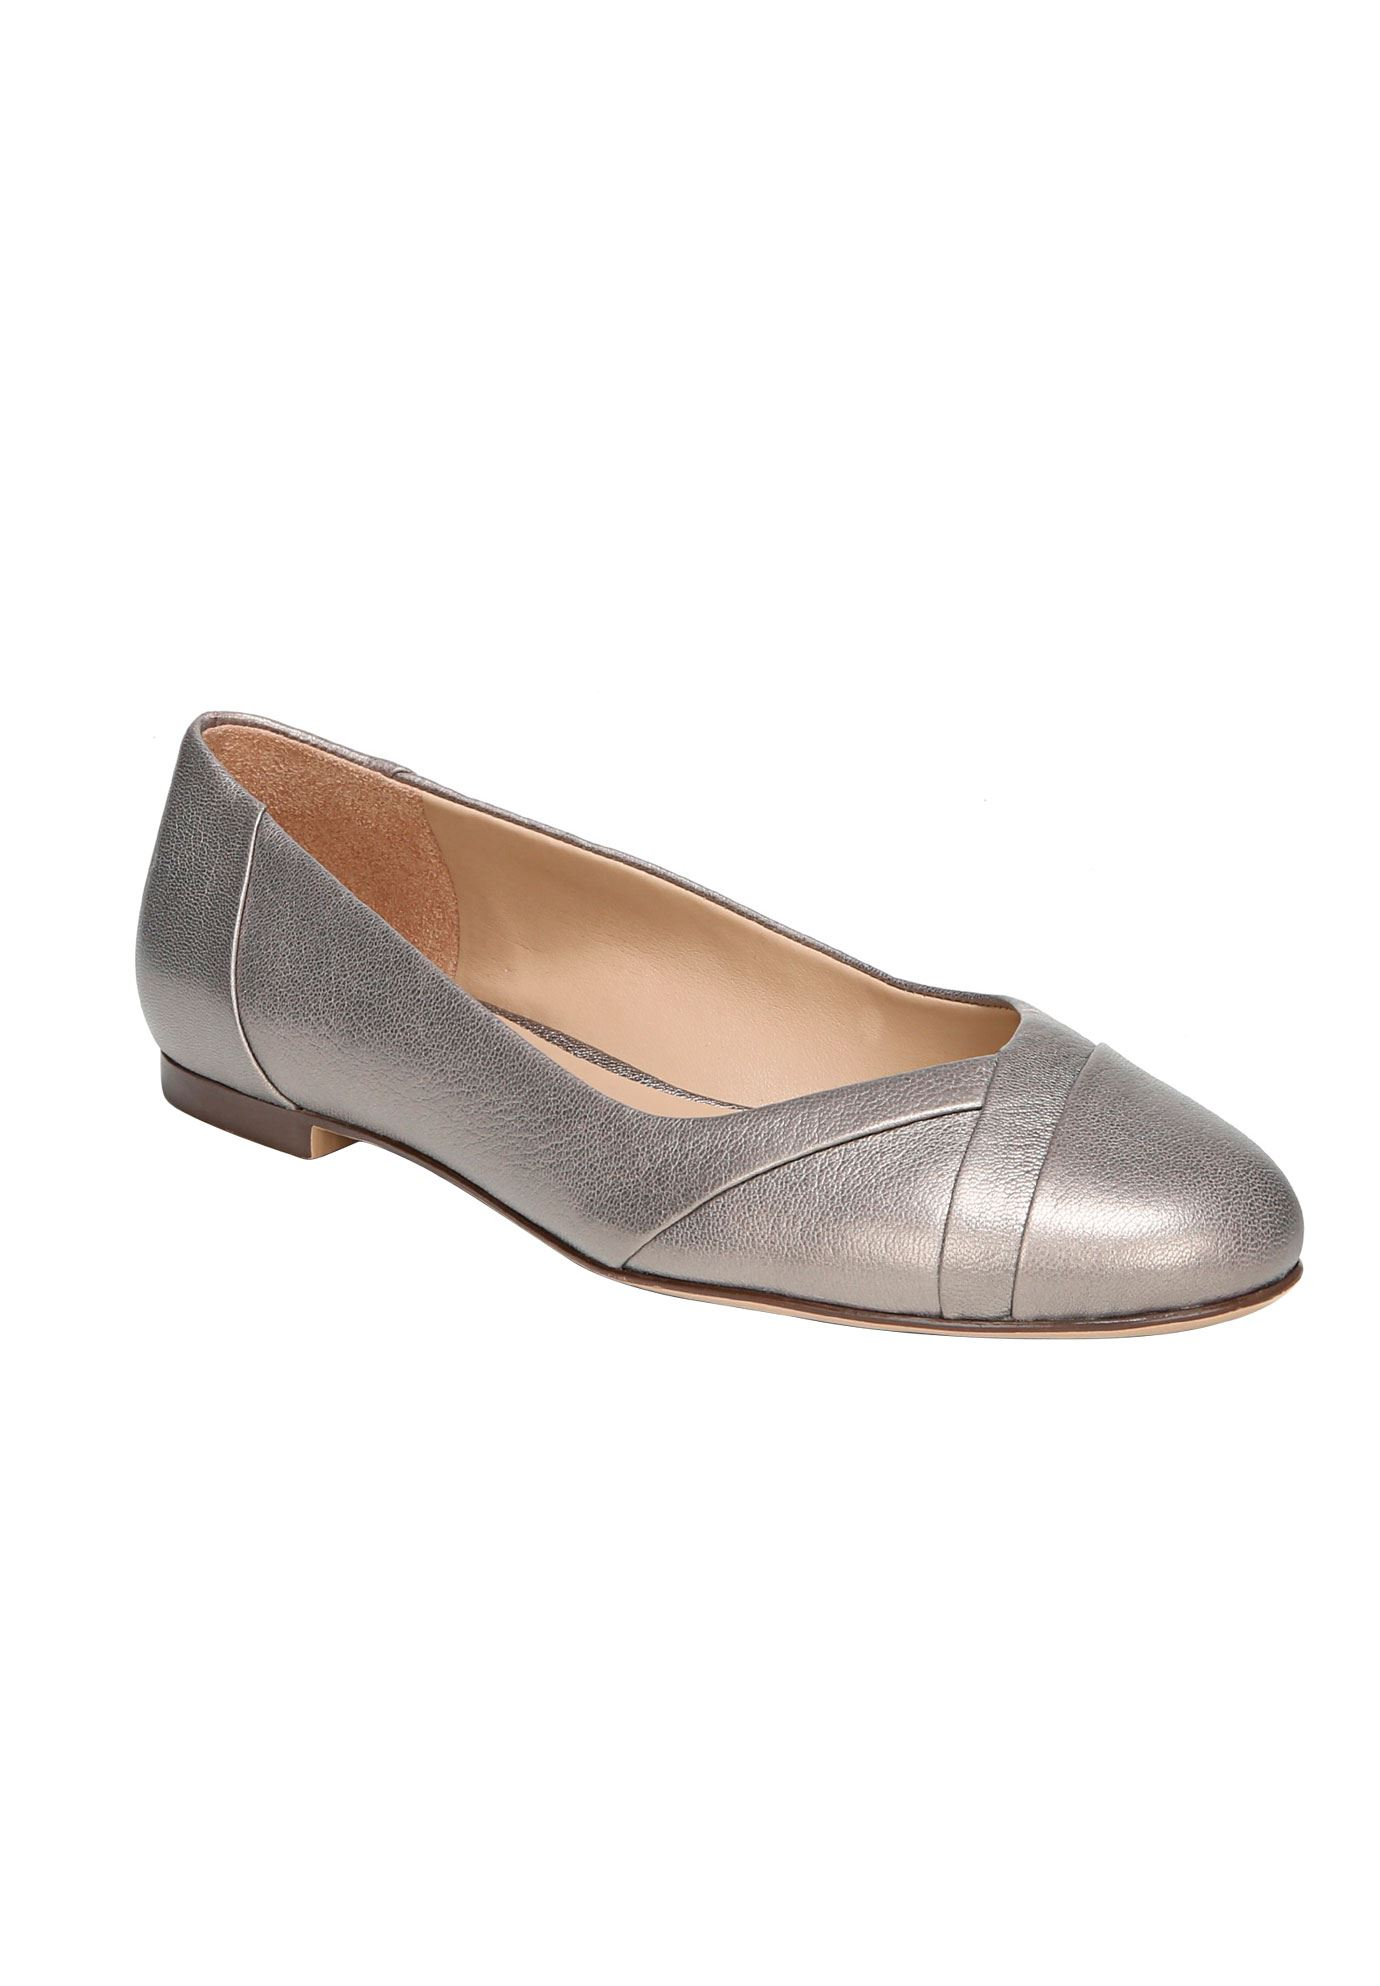 Gilly Flats by Naturalizer®,